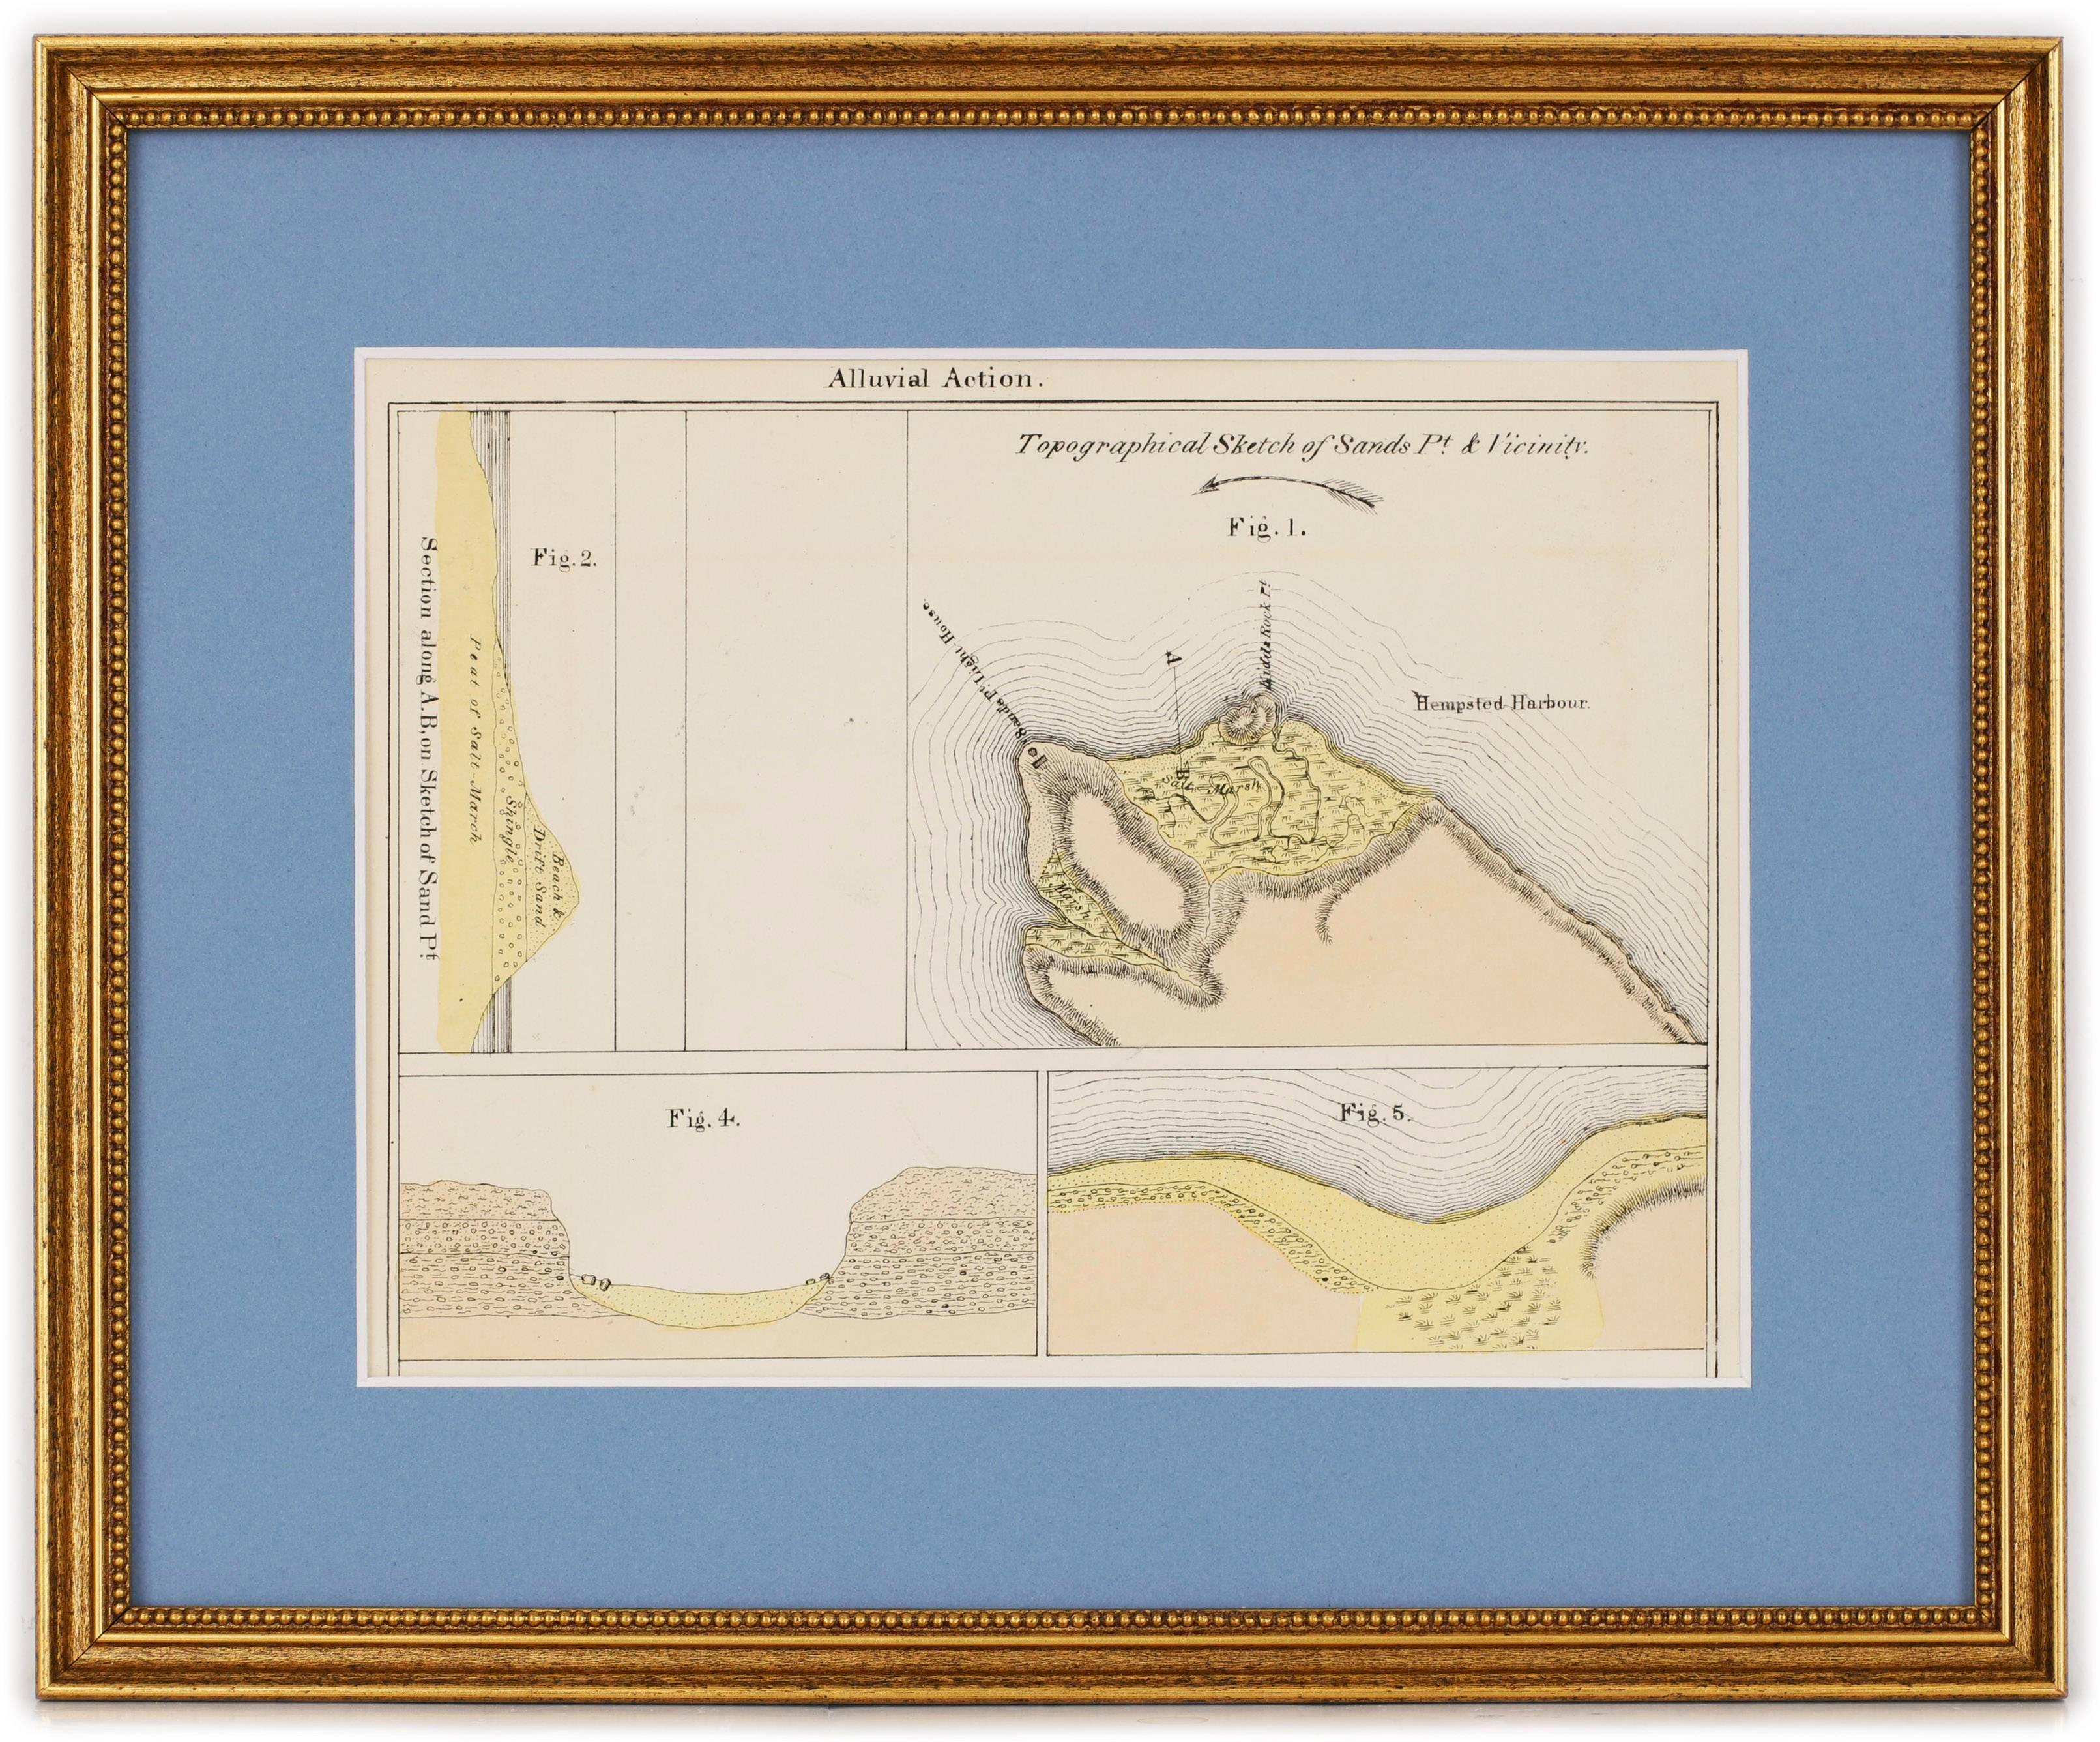 Topographical Map of Sands Point, Long Island and Vicinity